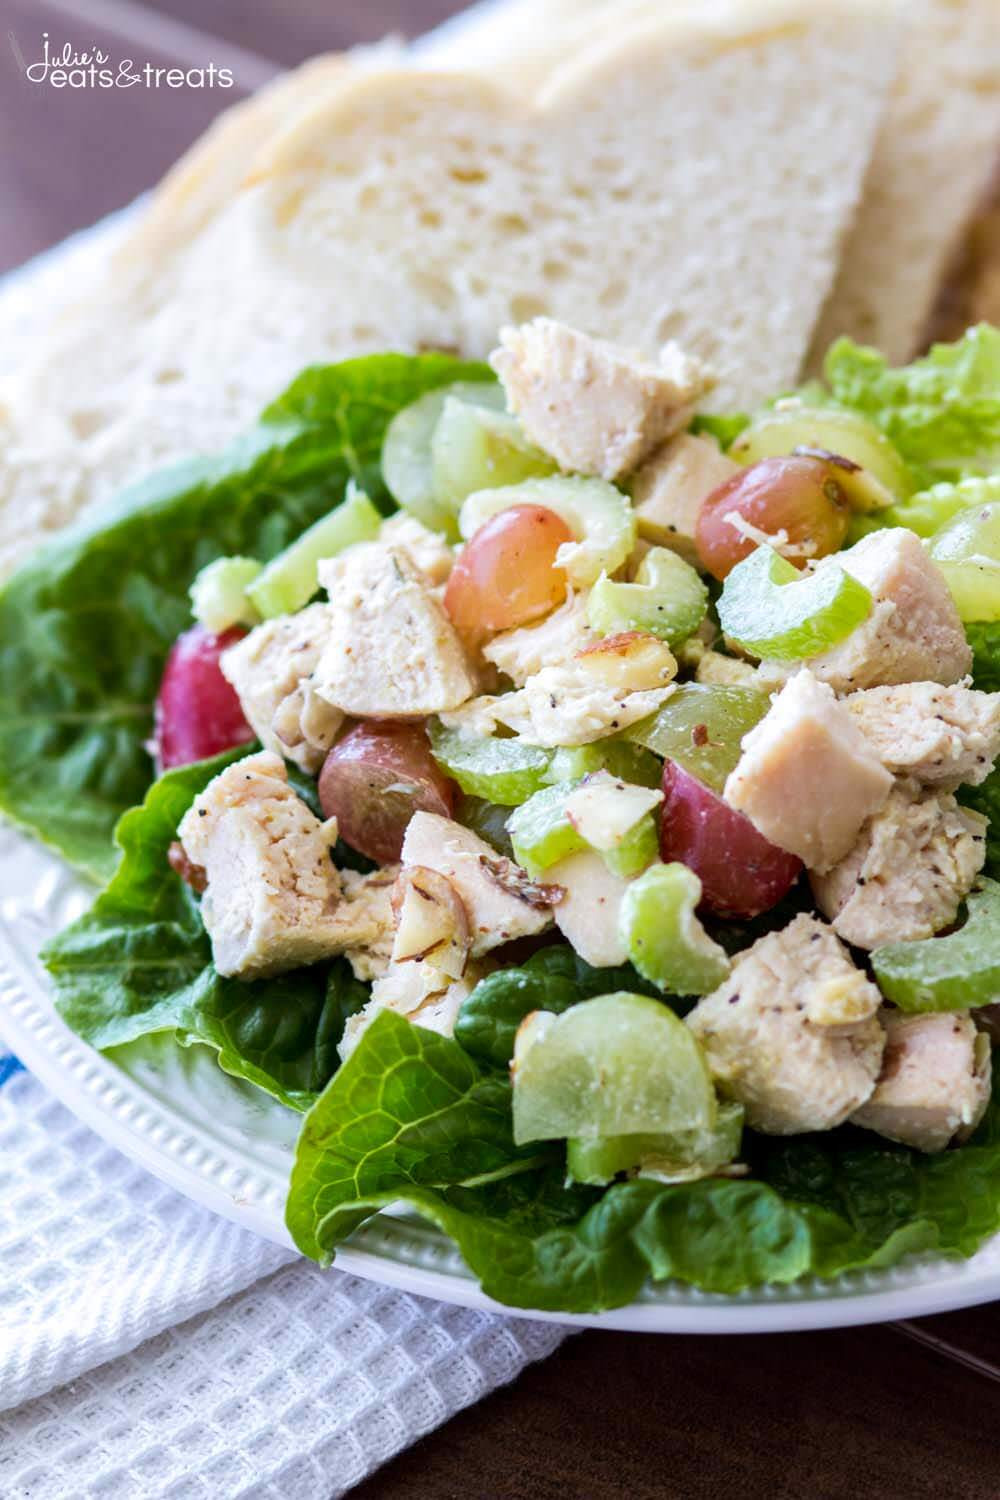 Healthy Chicken Salad Recipe Easy  Light and Healthy Chicken Salad Recipe Julie s Eats & Treats